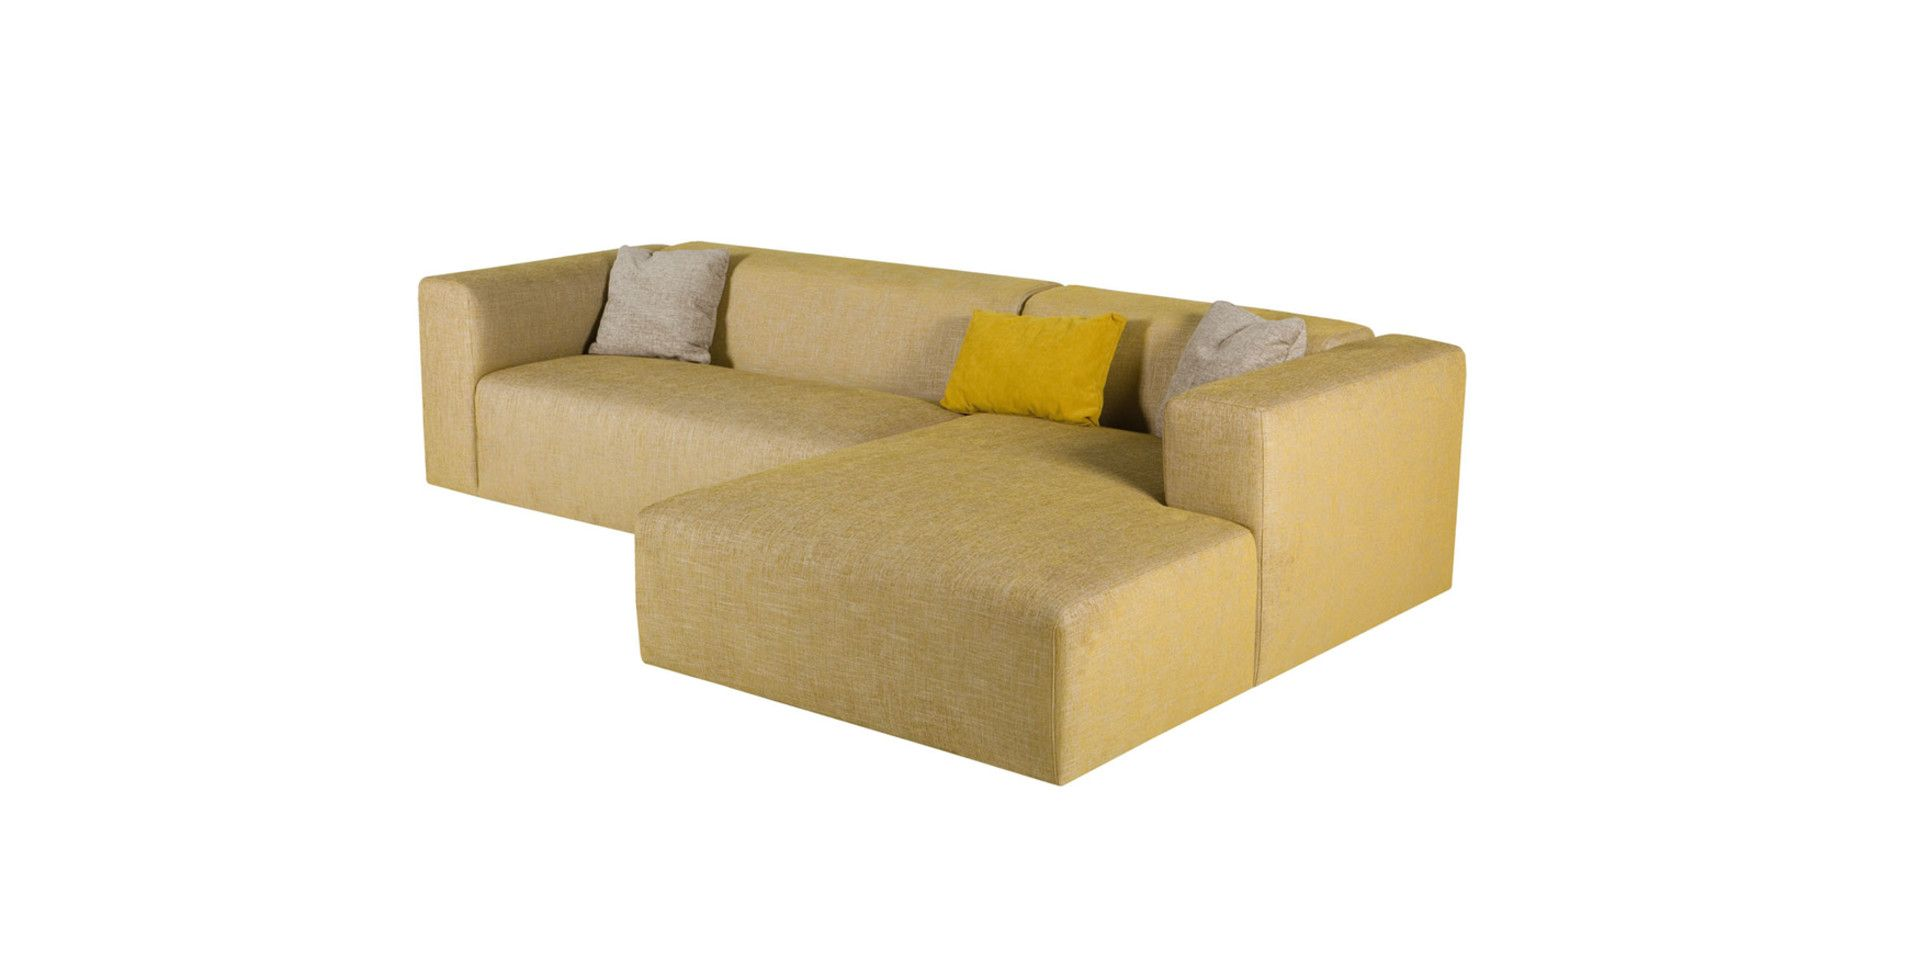 Milano Sits Sectional Couch Home Decor Couch